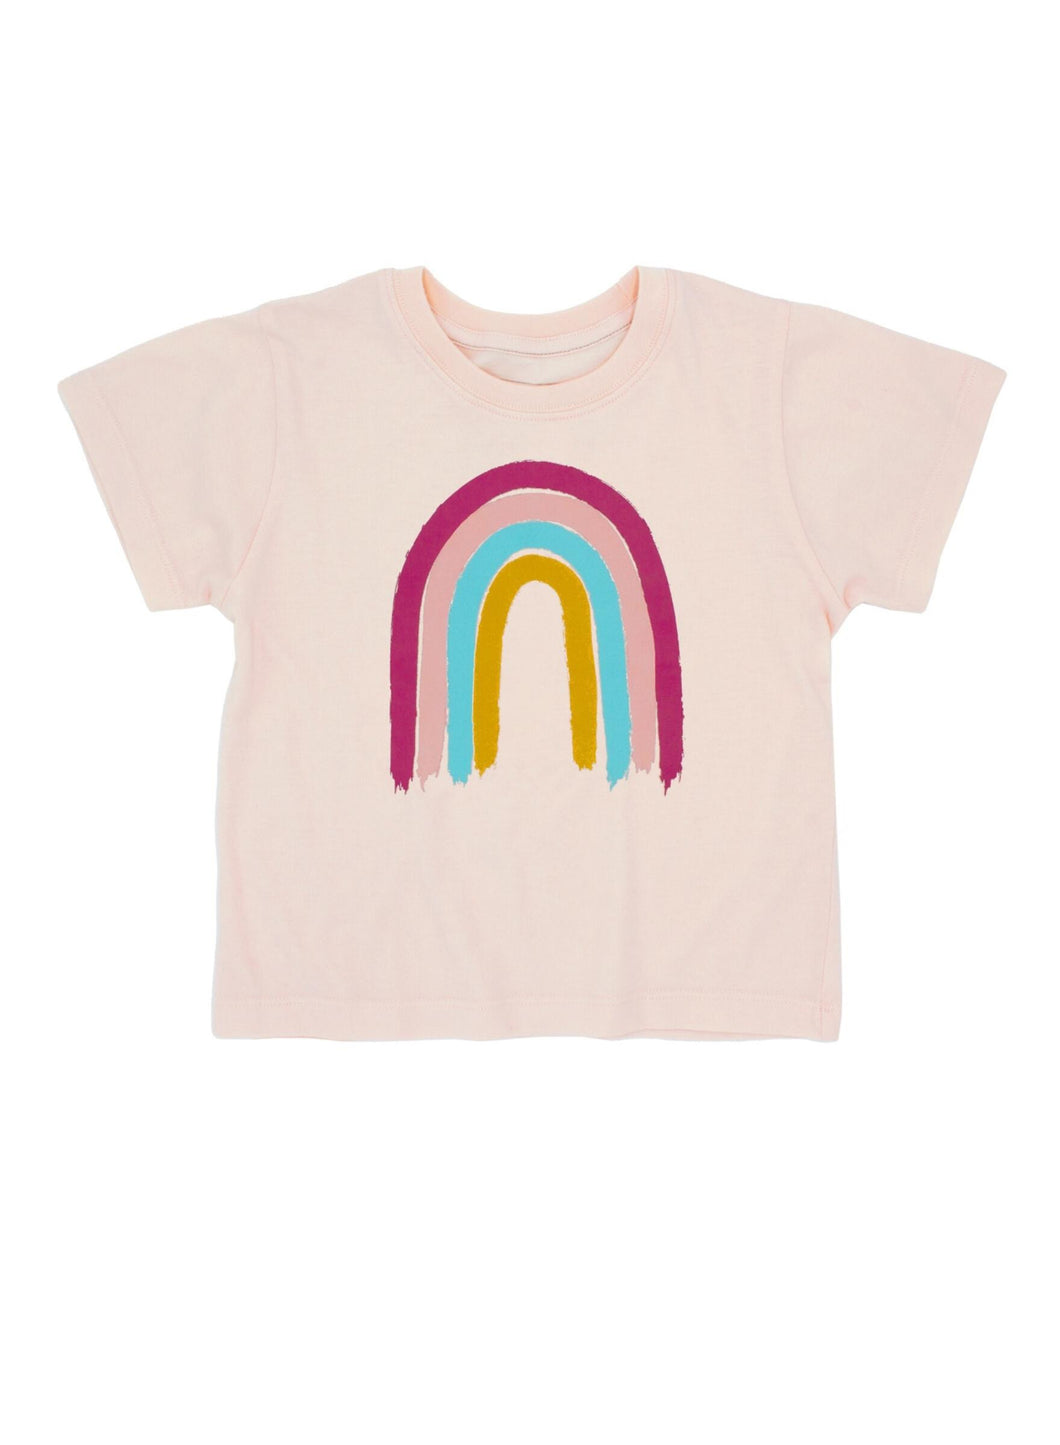 Painters Rainbow Vintage Organic Cotton Tee